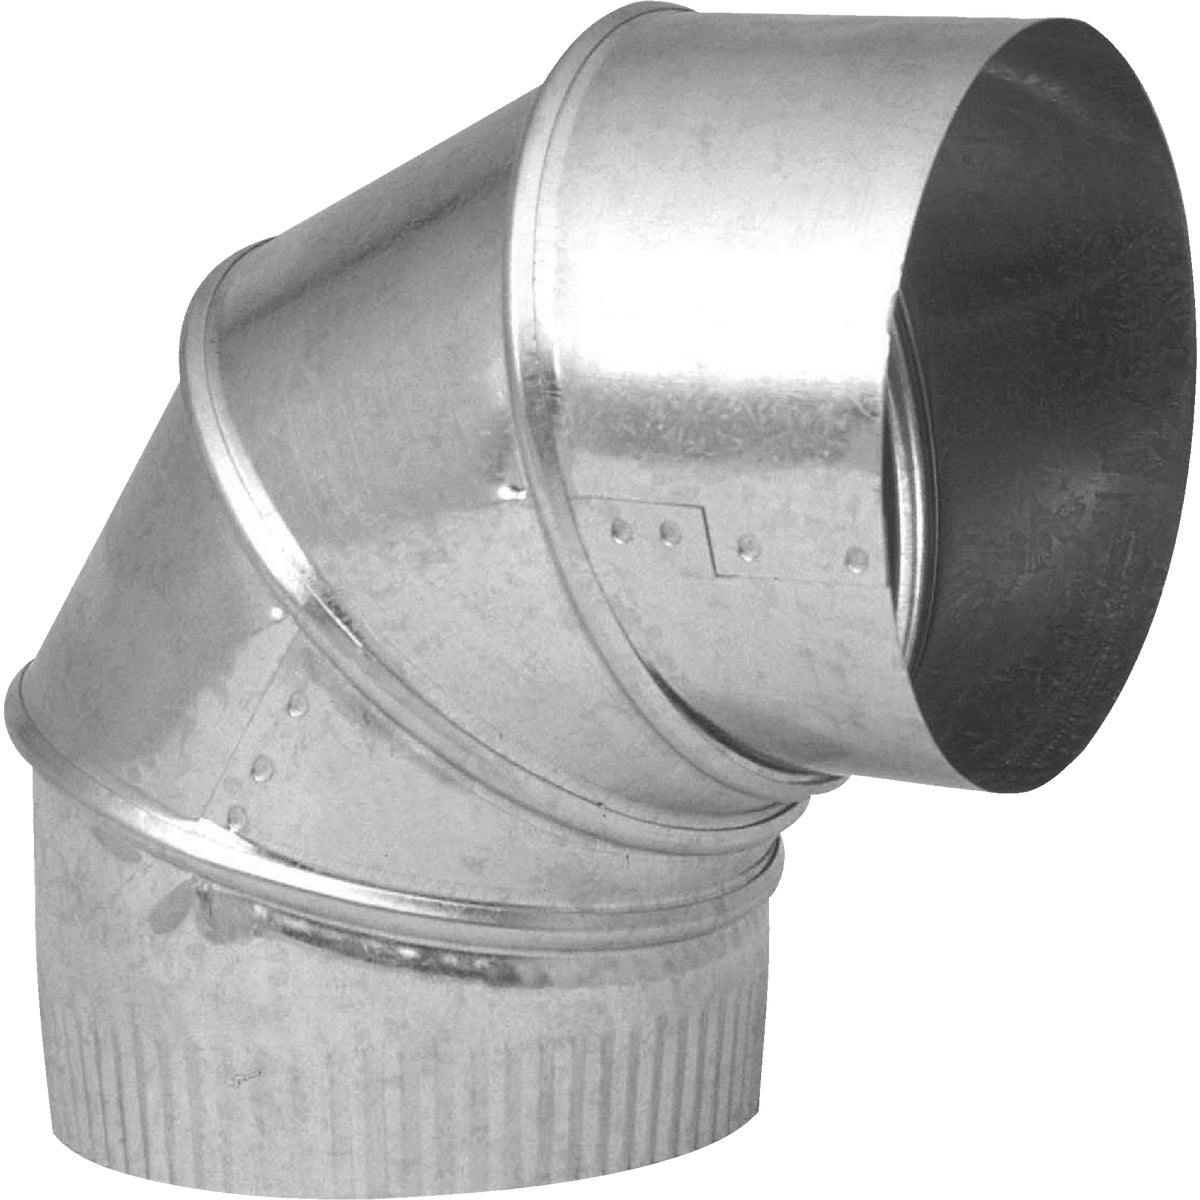 "3"" 28GA GALV ADJ ELBOW - GV0281-C by Imperial Mfg Group"